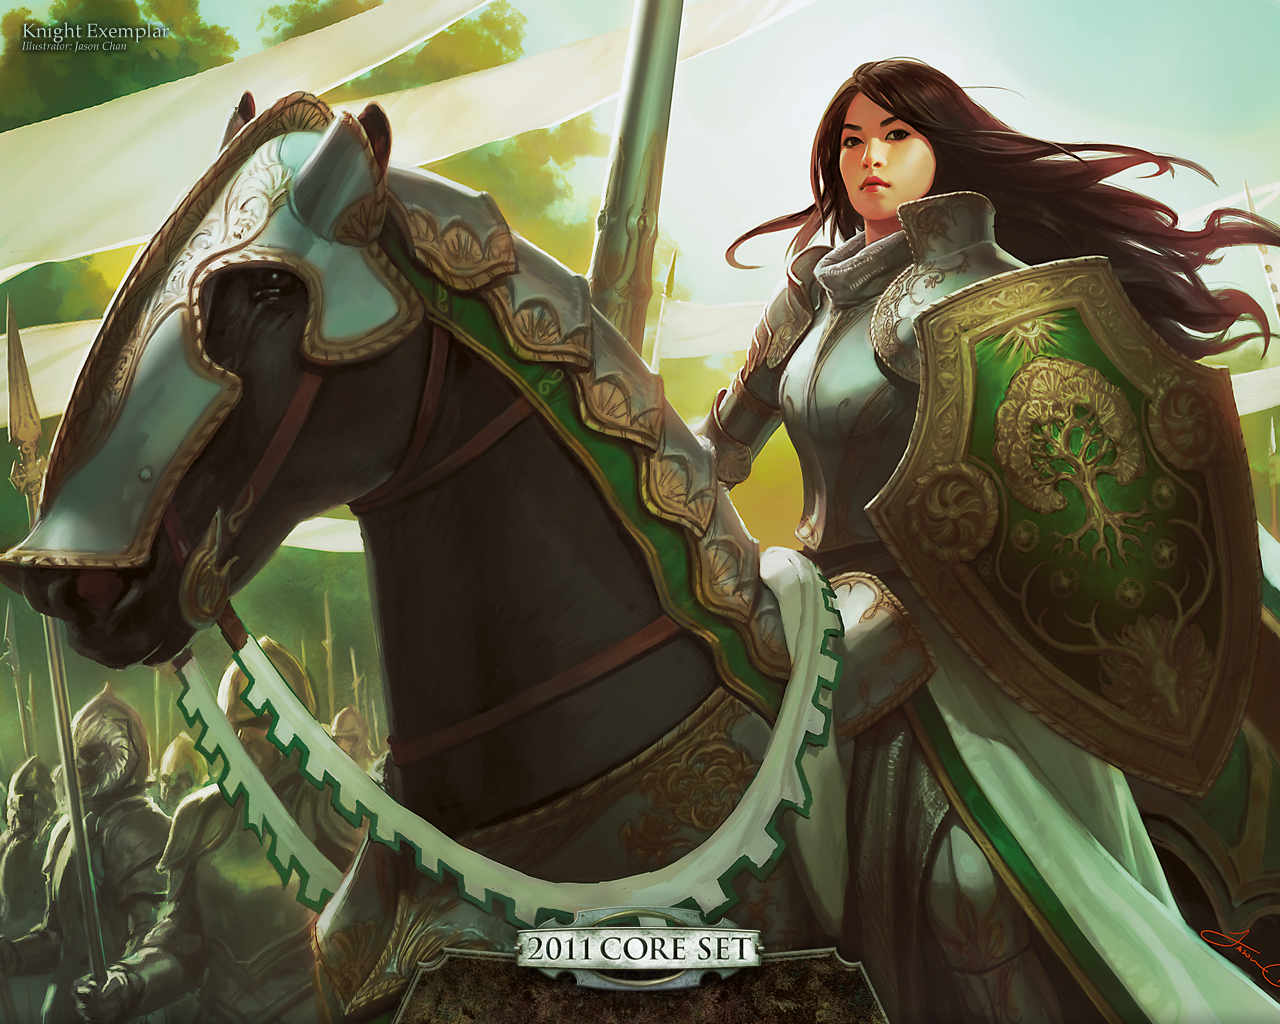 Wallpaper Of The Week Knight Exemplar Magic The Gathering